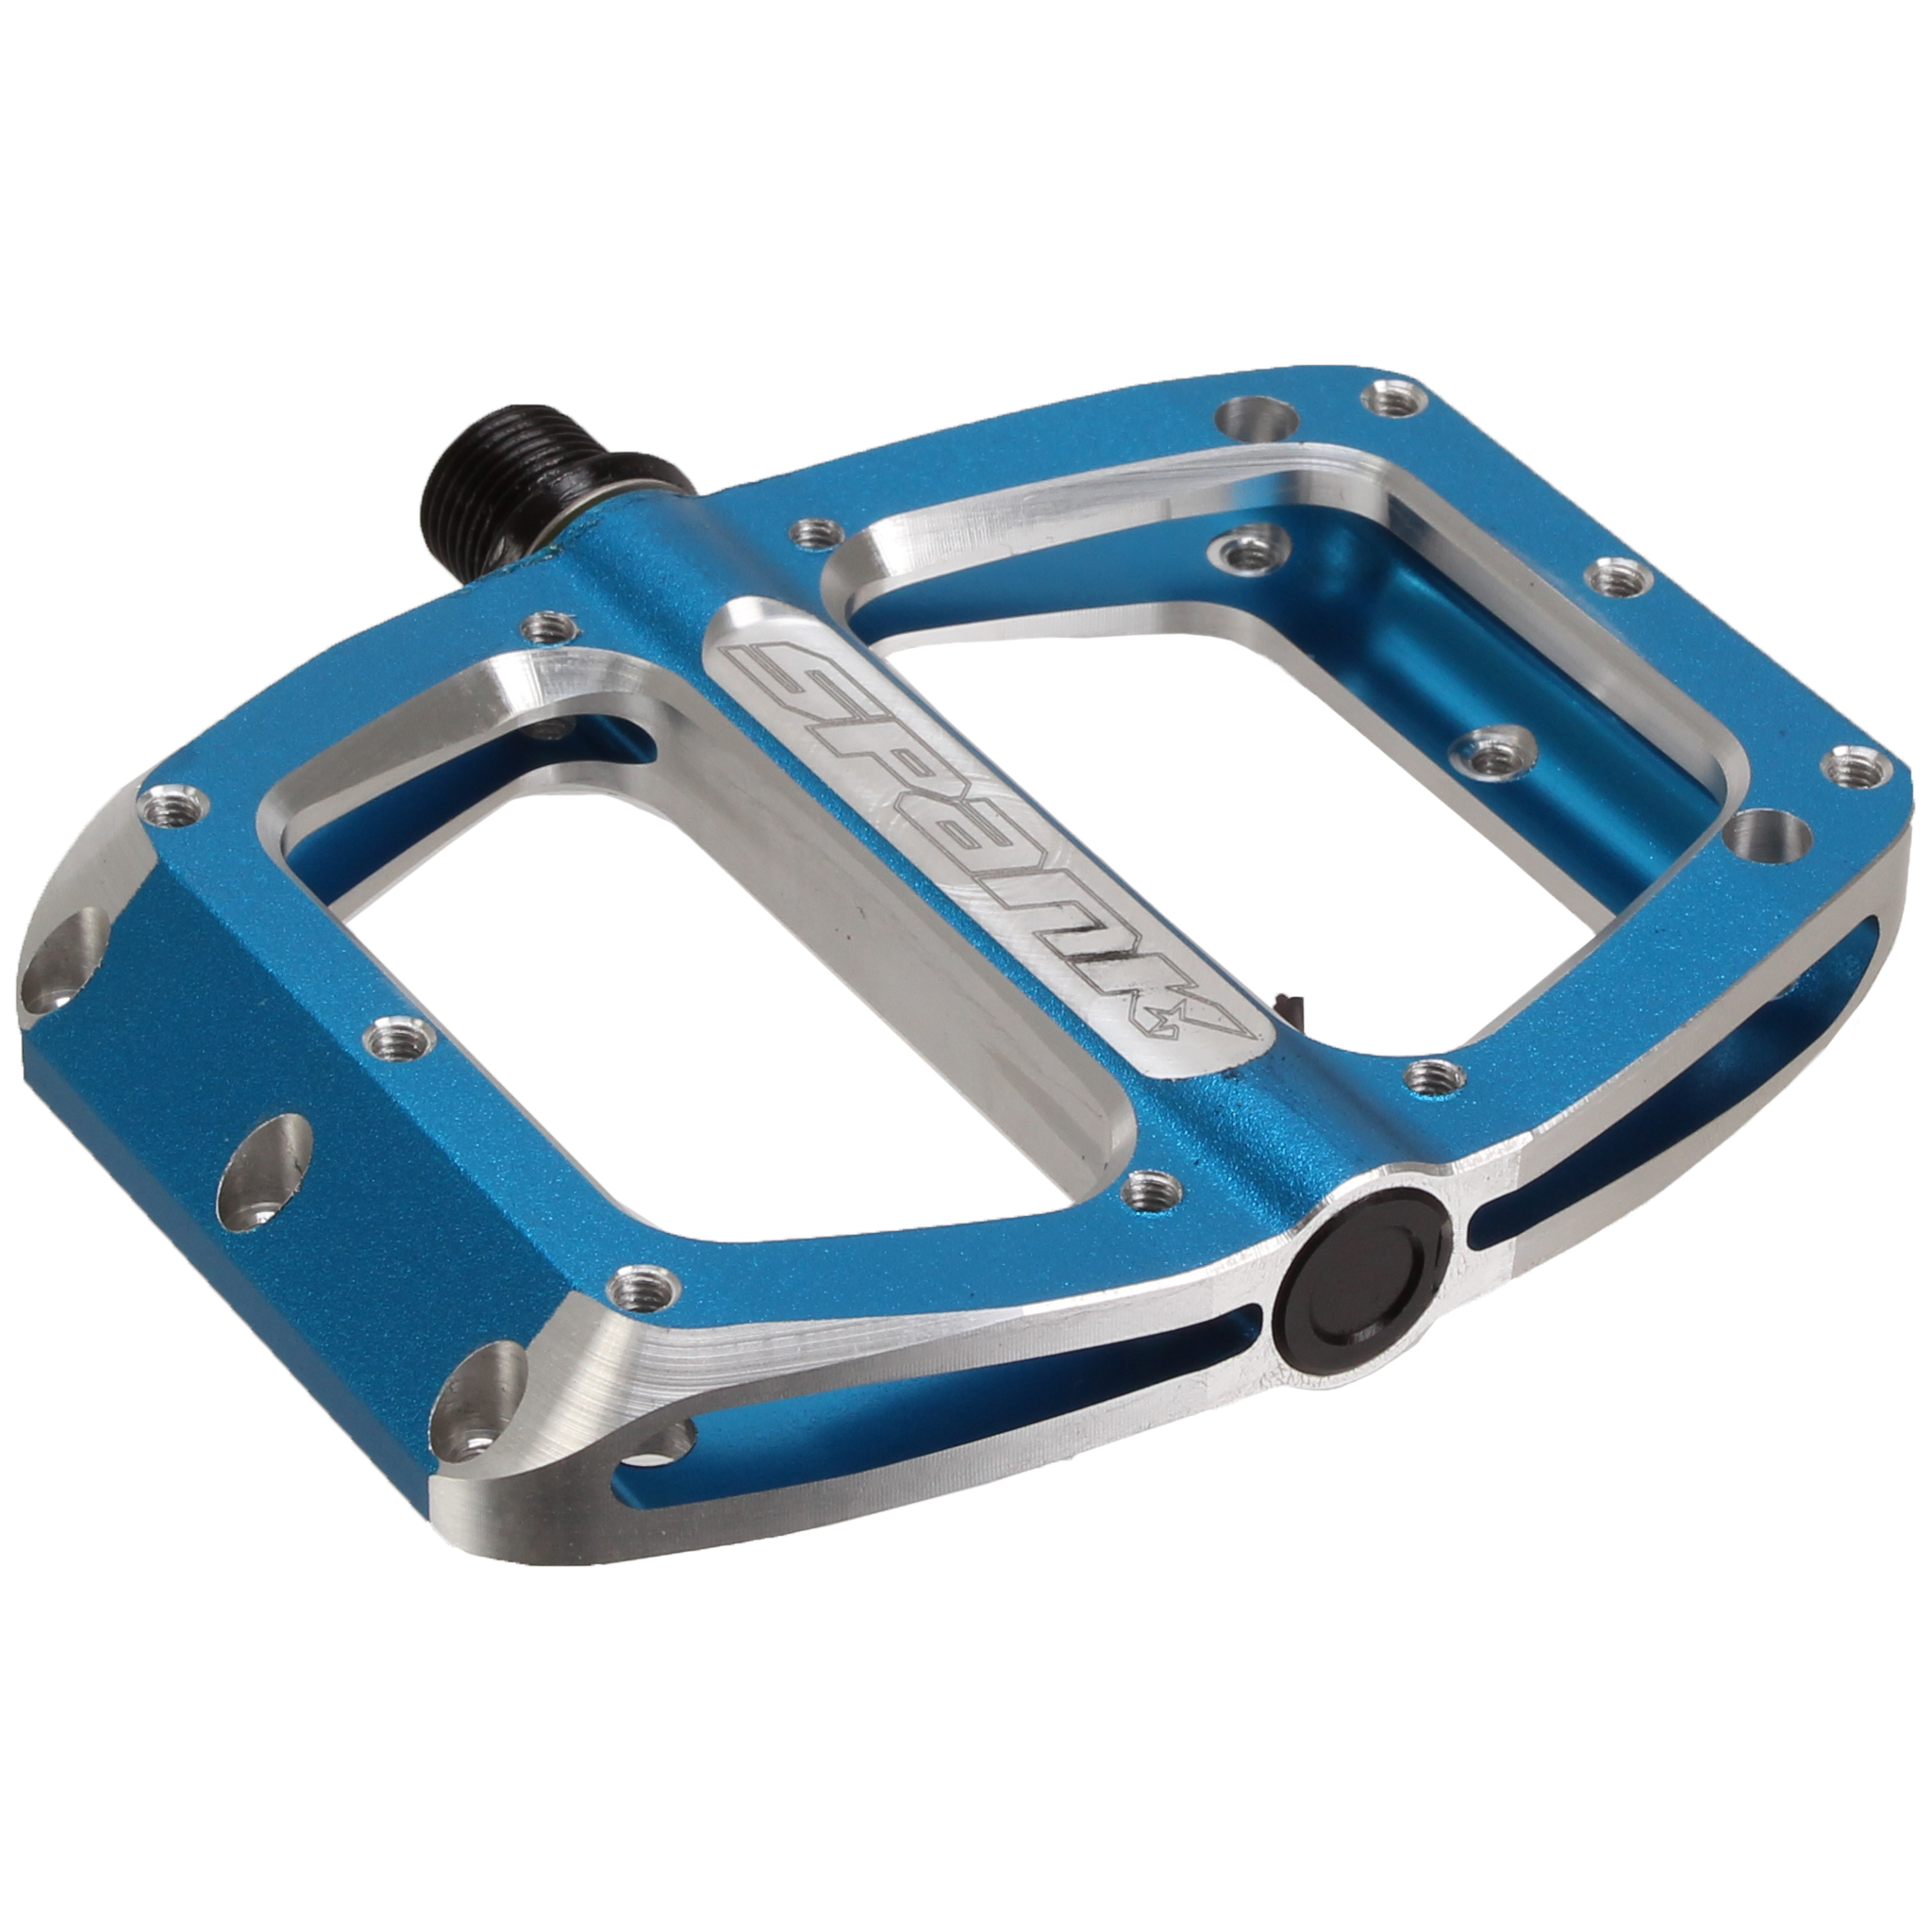 Spoon 100 Platform Pedals, Medium - blueee  NLS